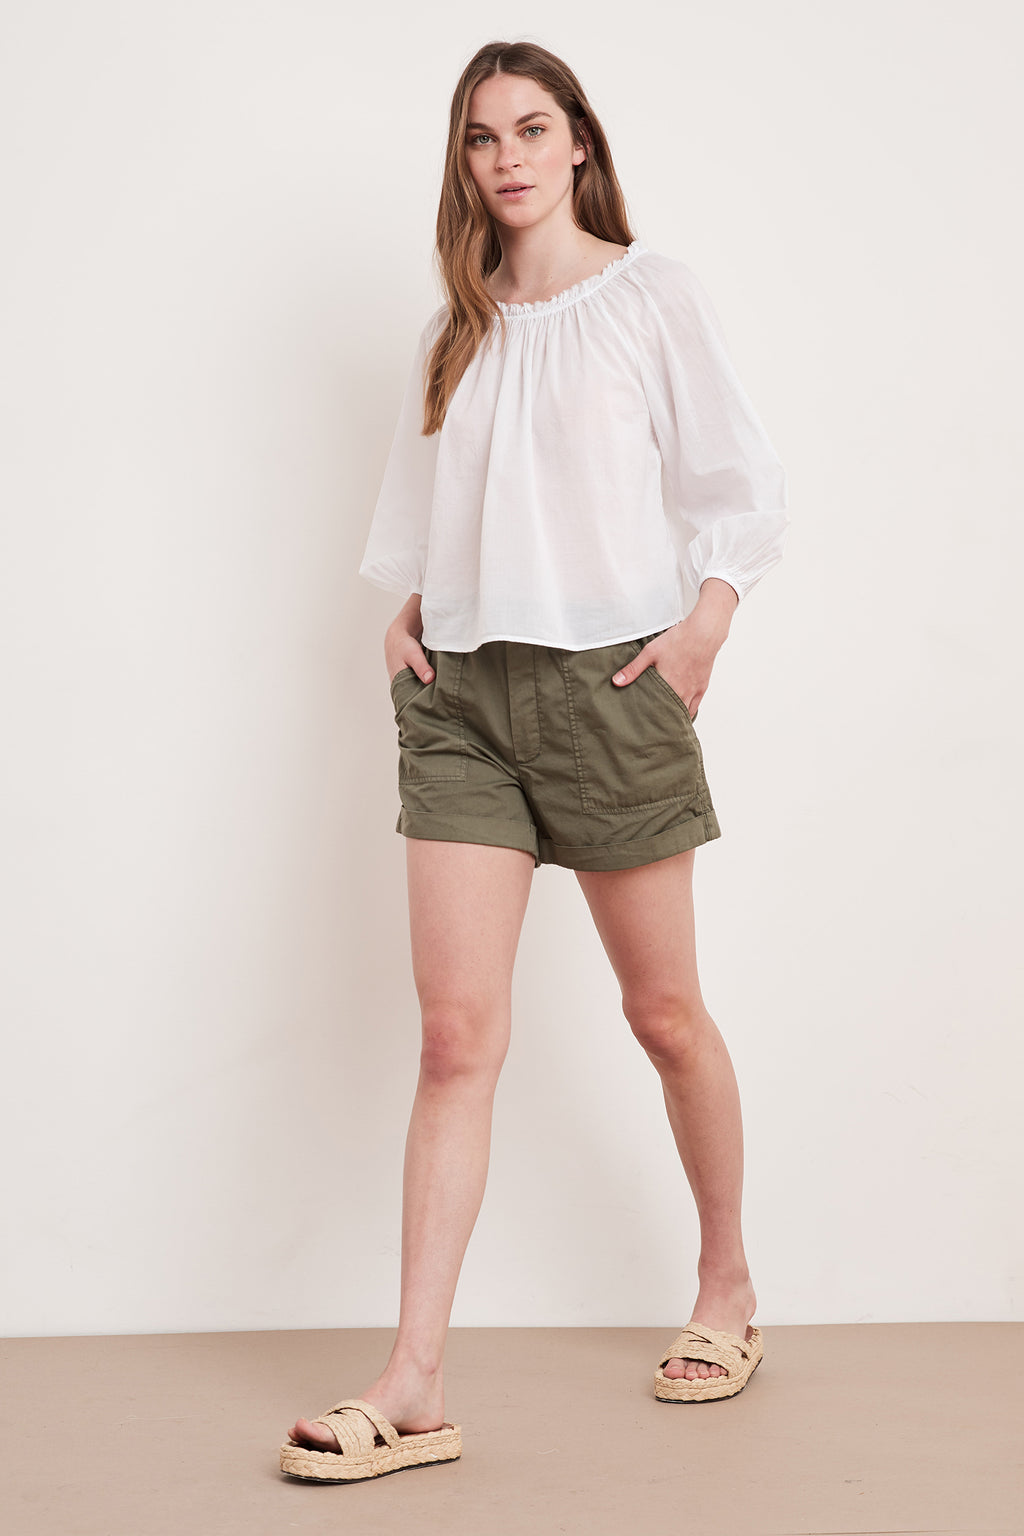 Velvet Ori Puff Sleeve Blouse in White